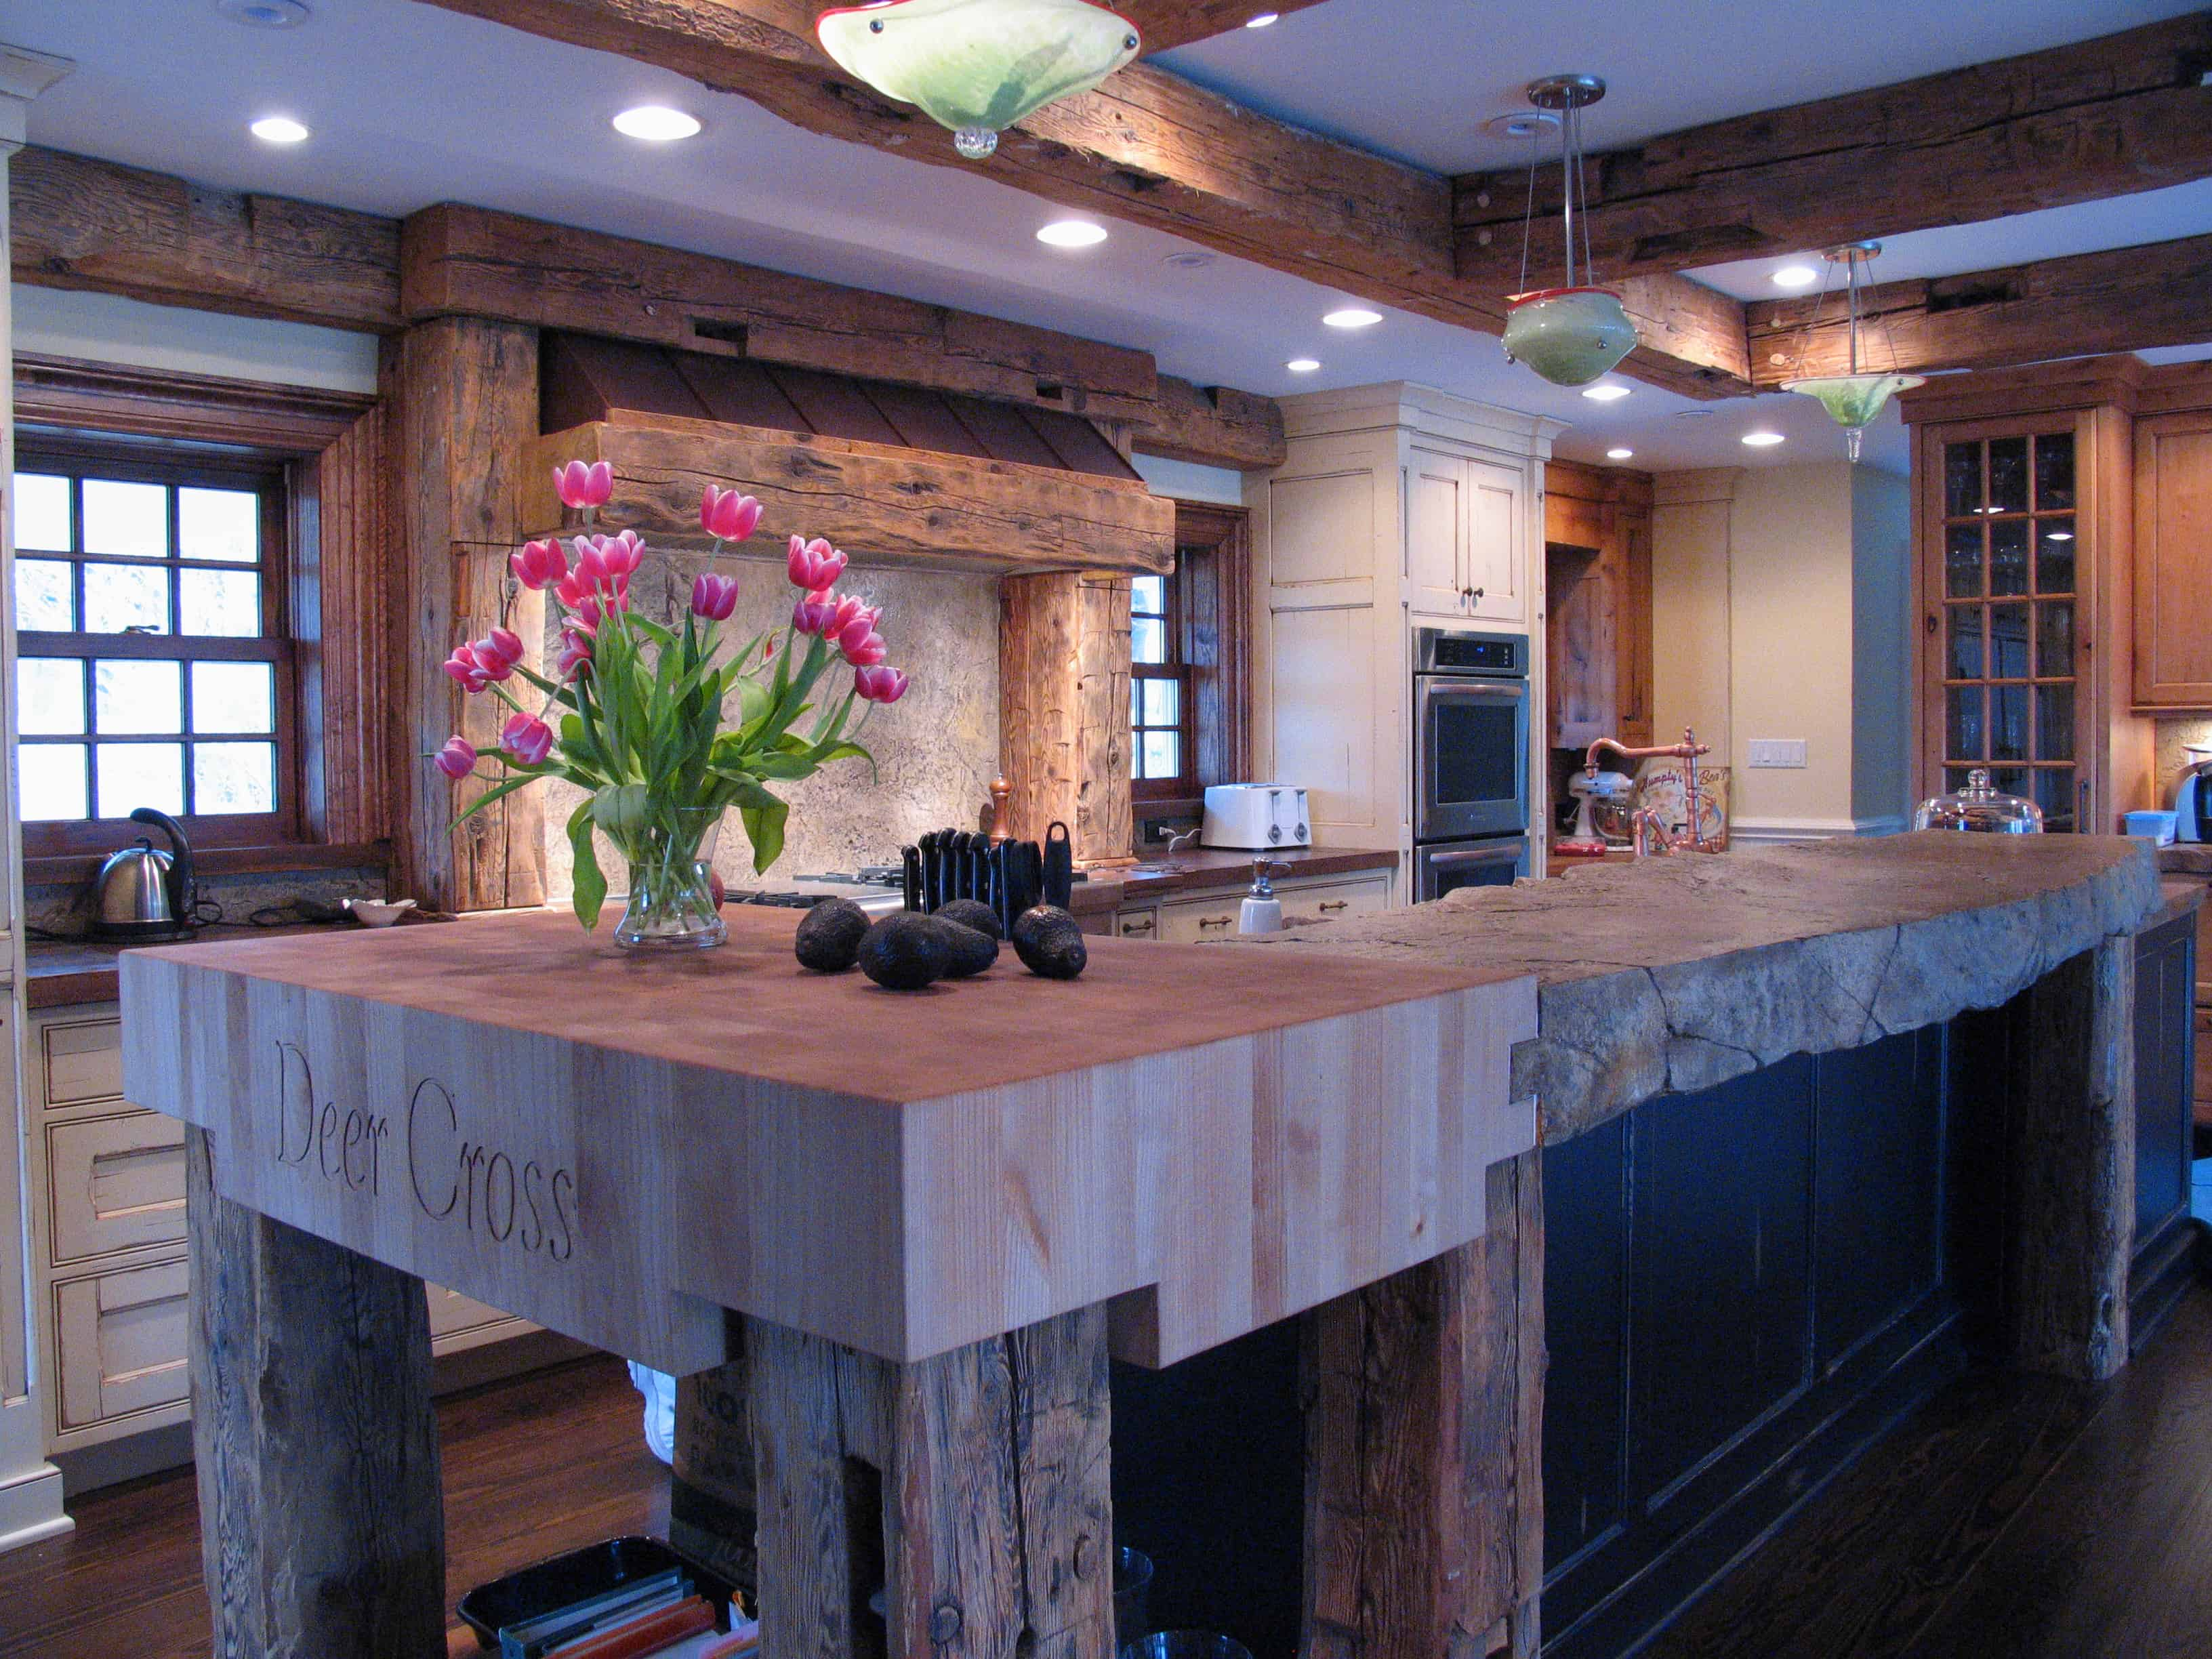 modern kitchen countertops from unusual materials wooden kitchen countertops View in gallery modern countertops unusual material kitchen wood raw